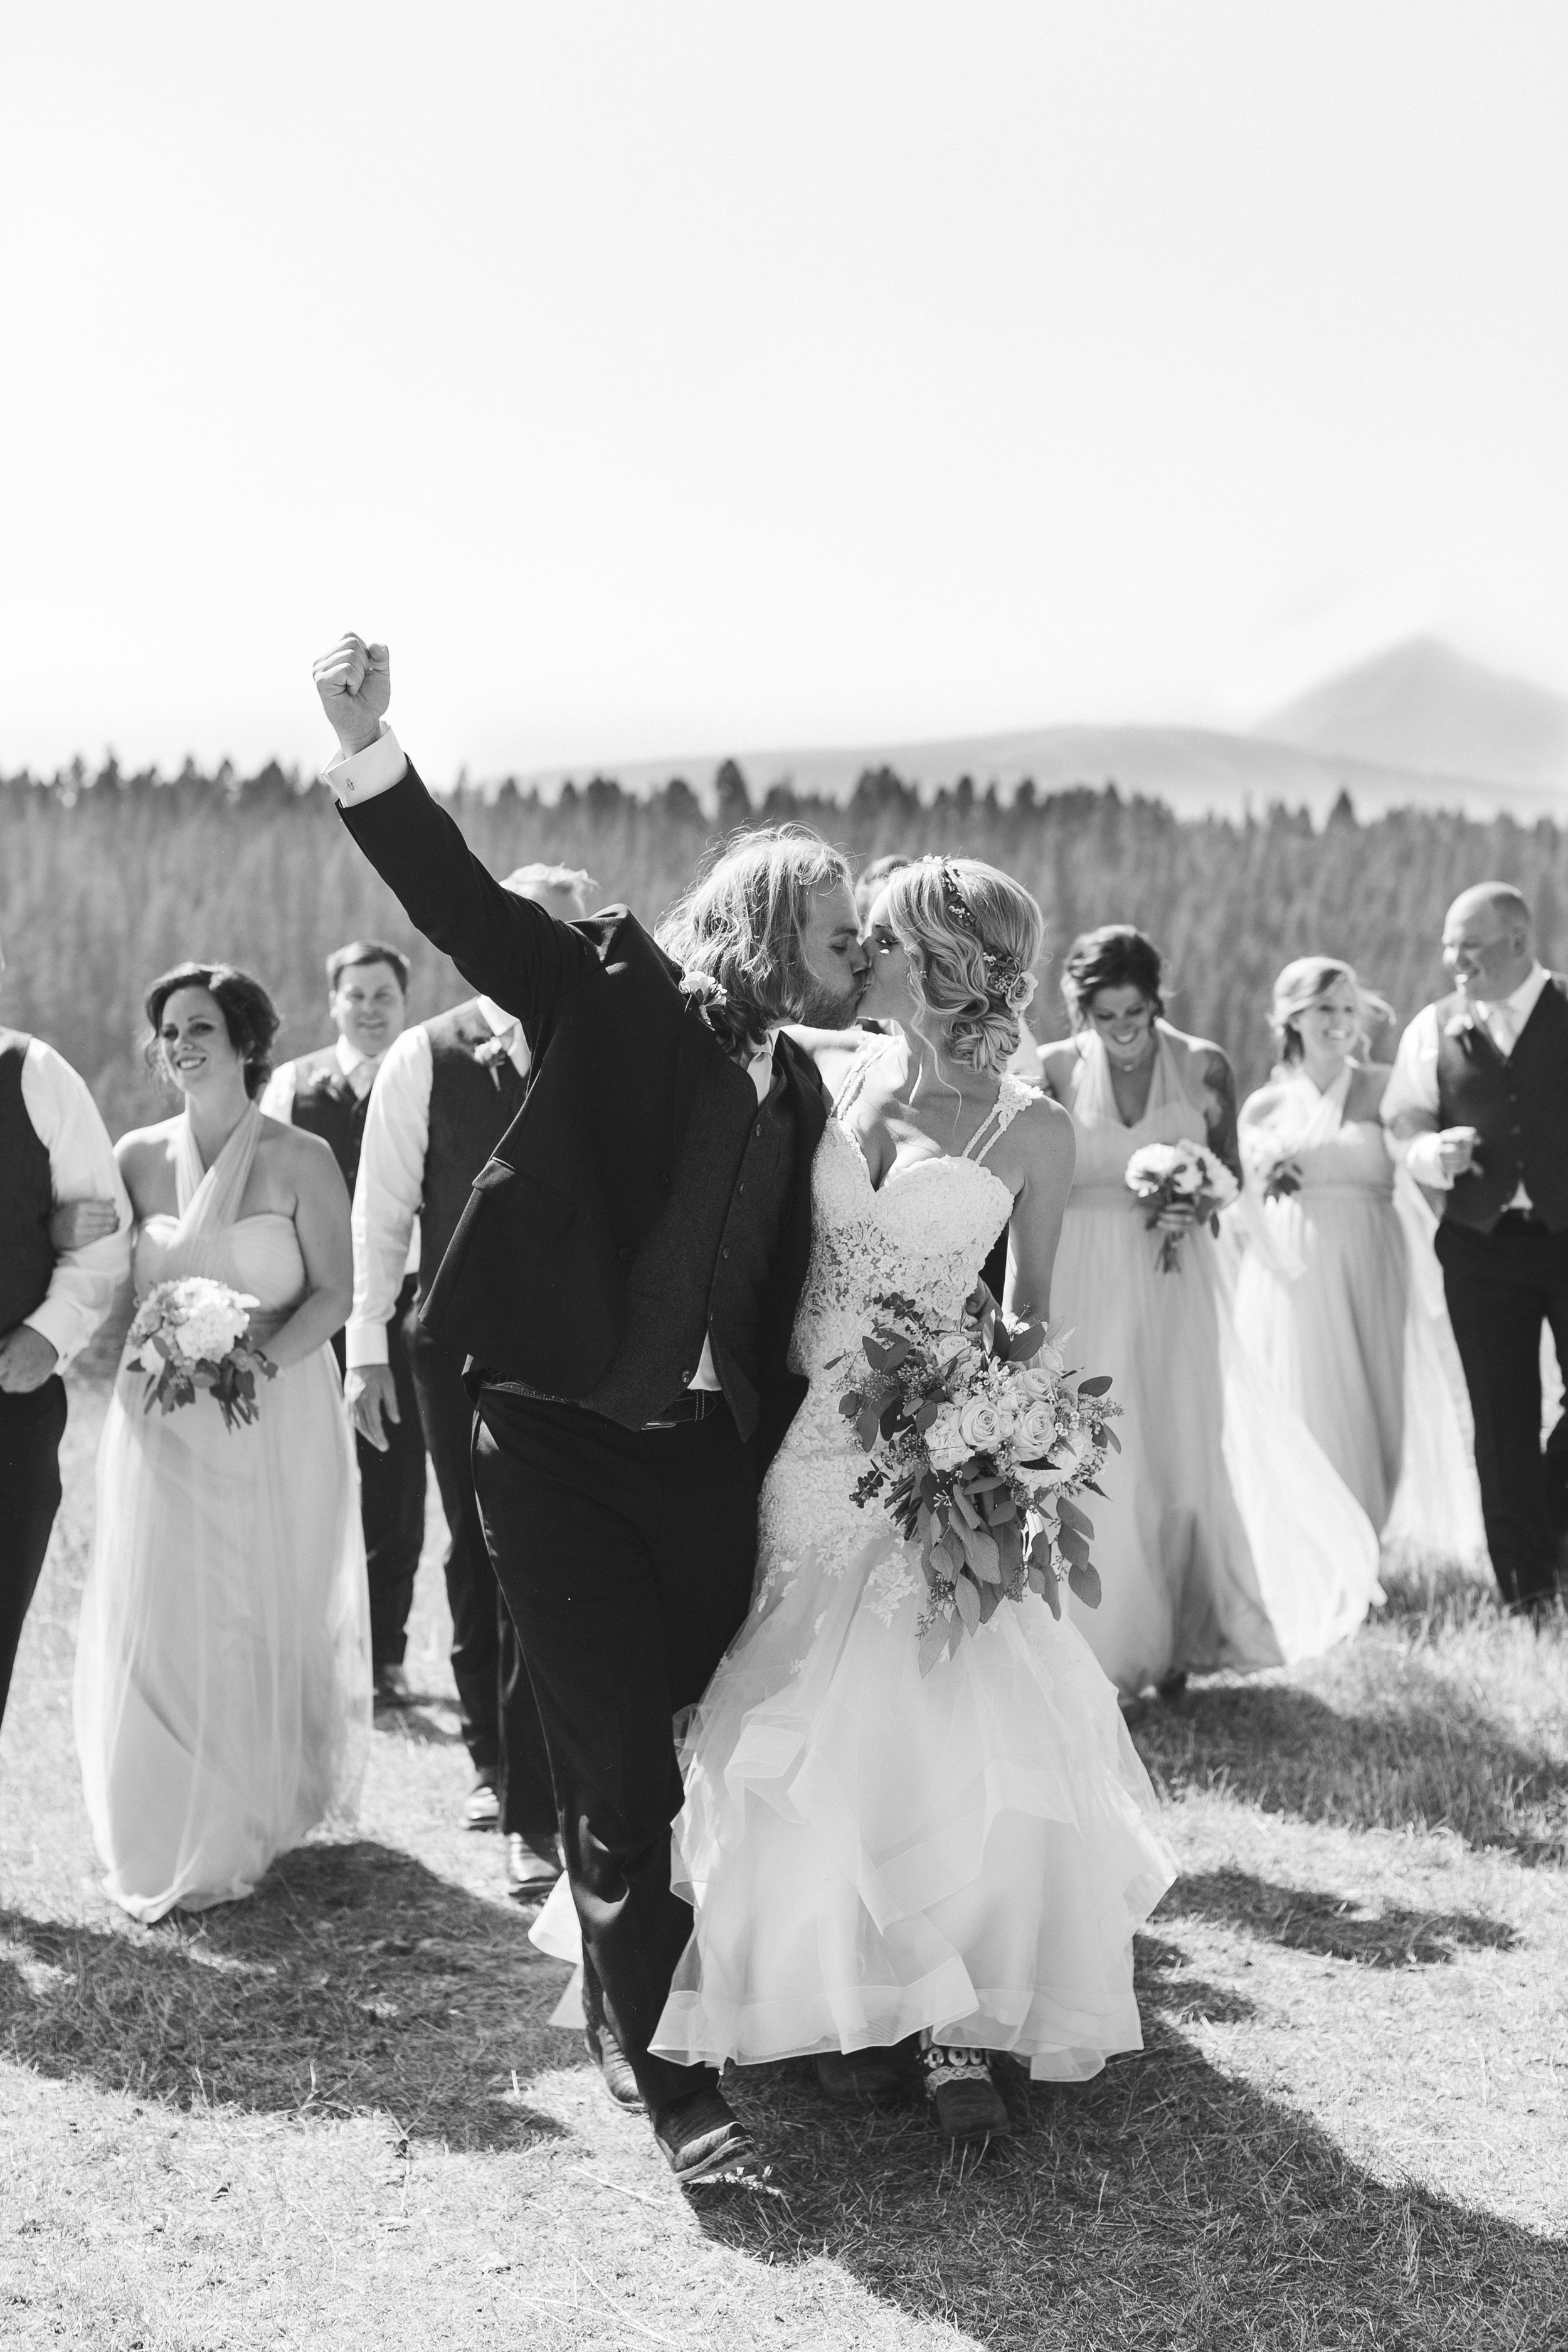 Groom celebrating kiss with bride on mountain for Big Sky Montana wedding at Lone Mountain Ranch with bridal party in background